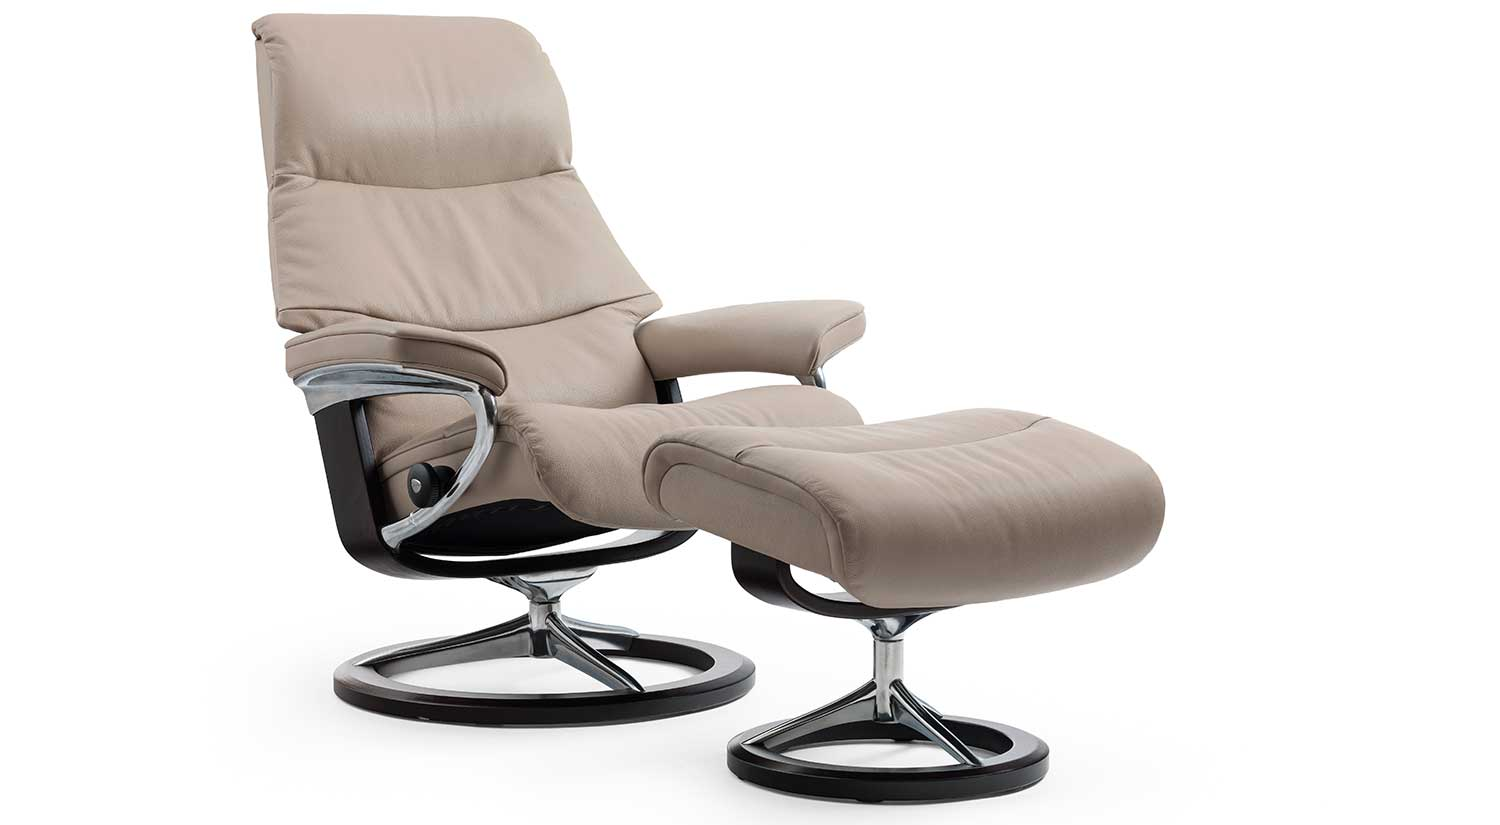 Marvelous View Stressless Chair And Otto Signature ...